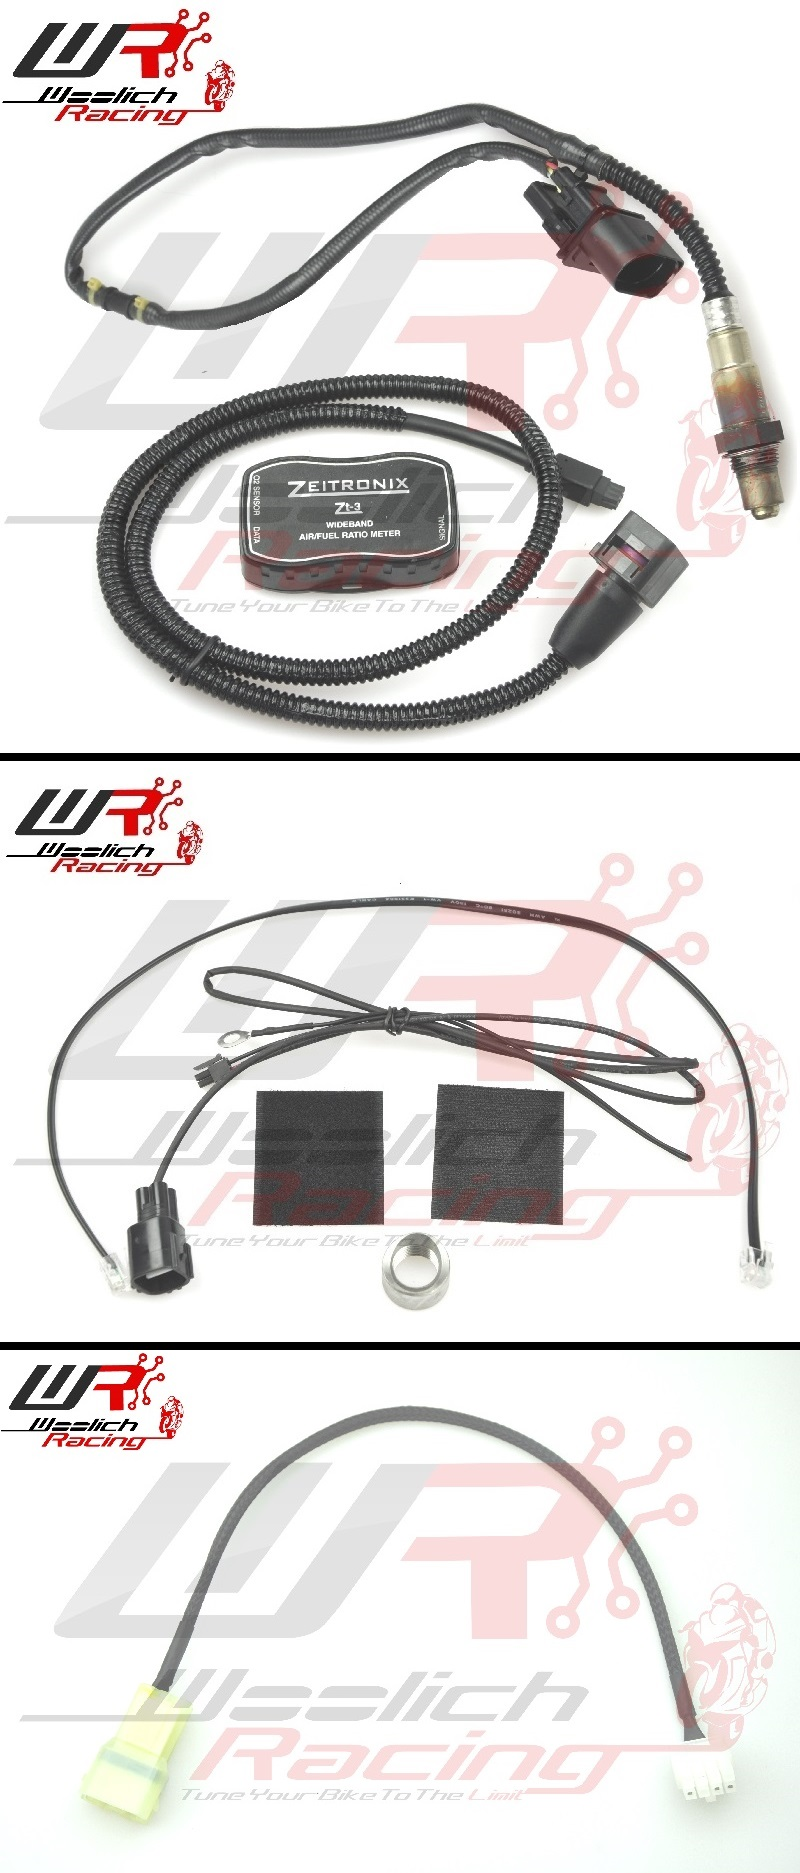 2017-2018 Kawasaki Z900 - Log Box (Denso) v3 + Zeitronix ZT-3 Wideband O2 Package